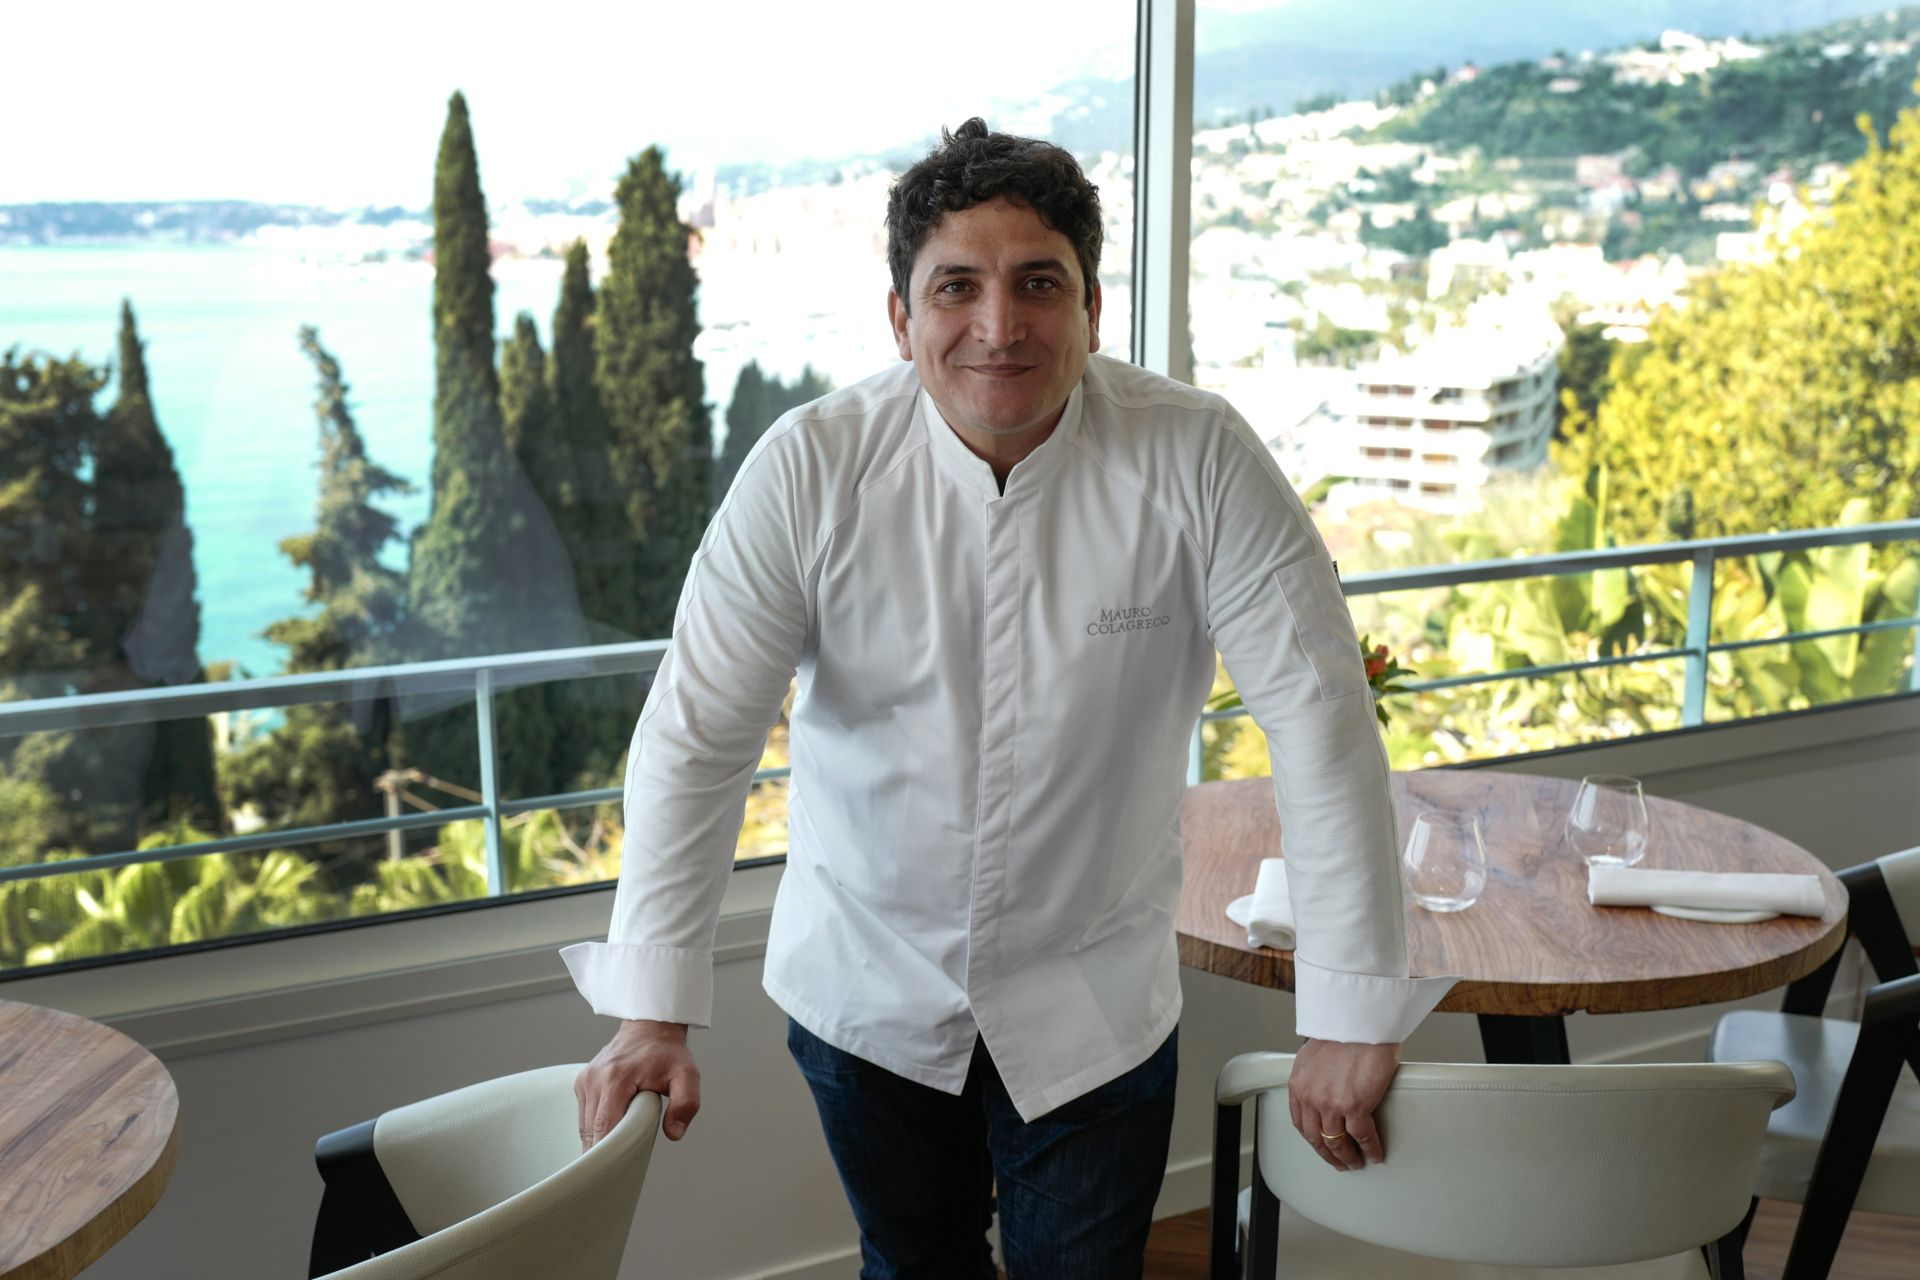 """Italian-Argentinian chef Mauro Colagreco poses for a photo session in the """"Mirazur"""" restaurant on the French riviera city of Menton on April 13, 2019. - Mauro Colagreco was awarded three Michelin stars on January 21, 2019. (Photo by VALERY HACHE / AFP)"""